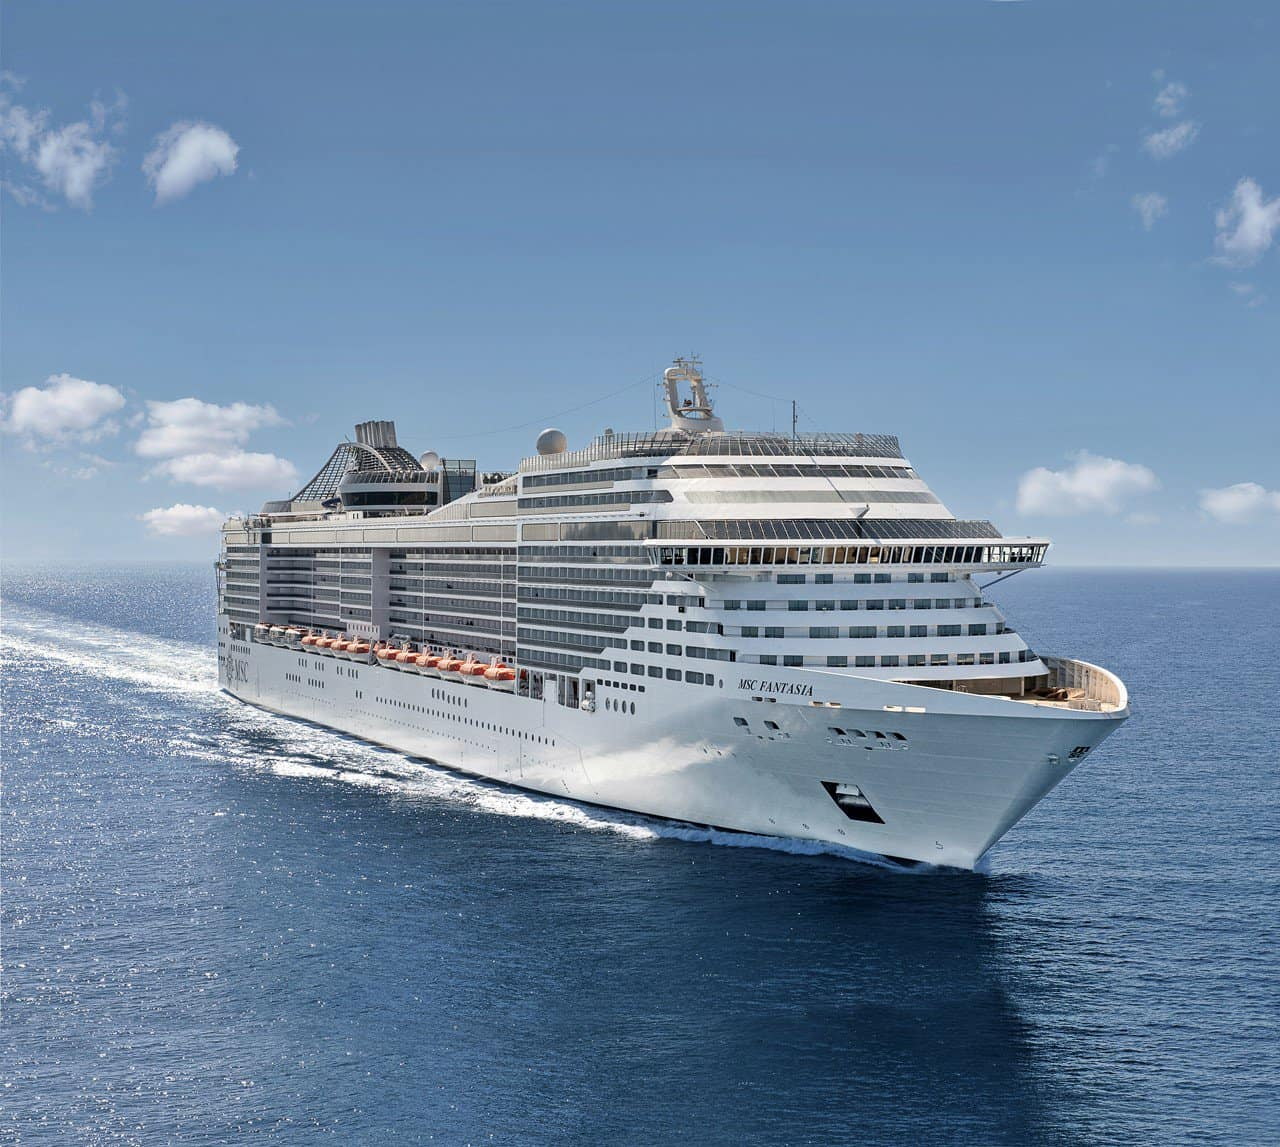 msc-fantasia-msc-crociere